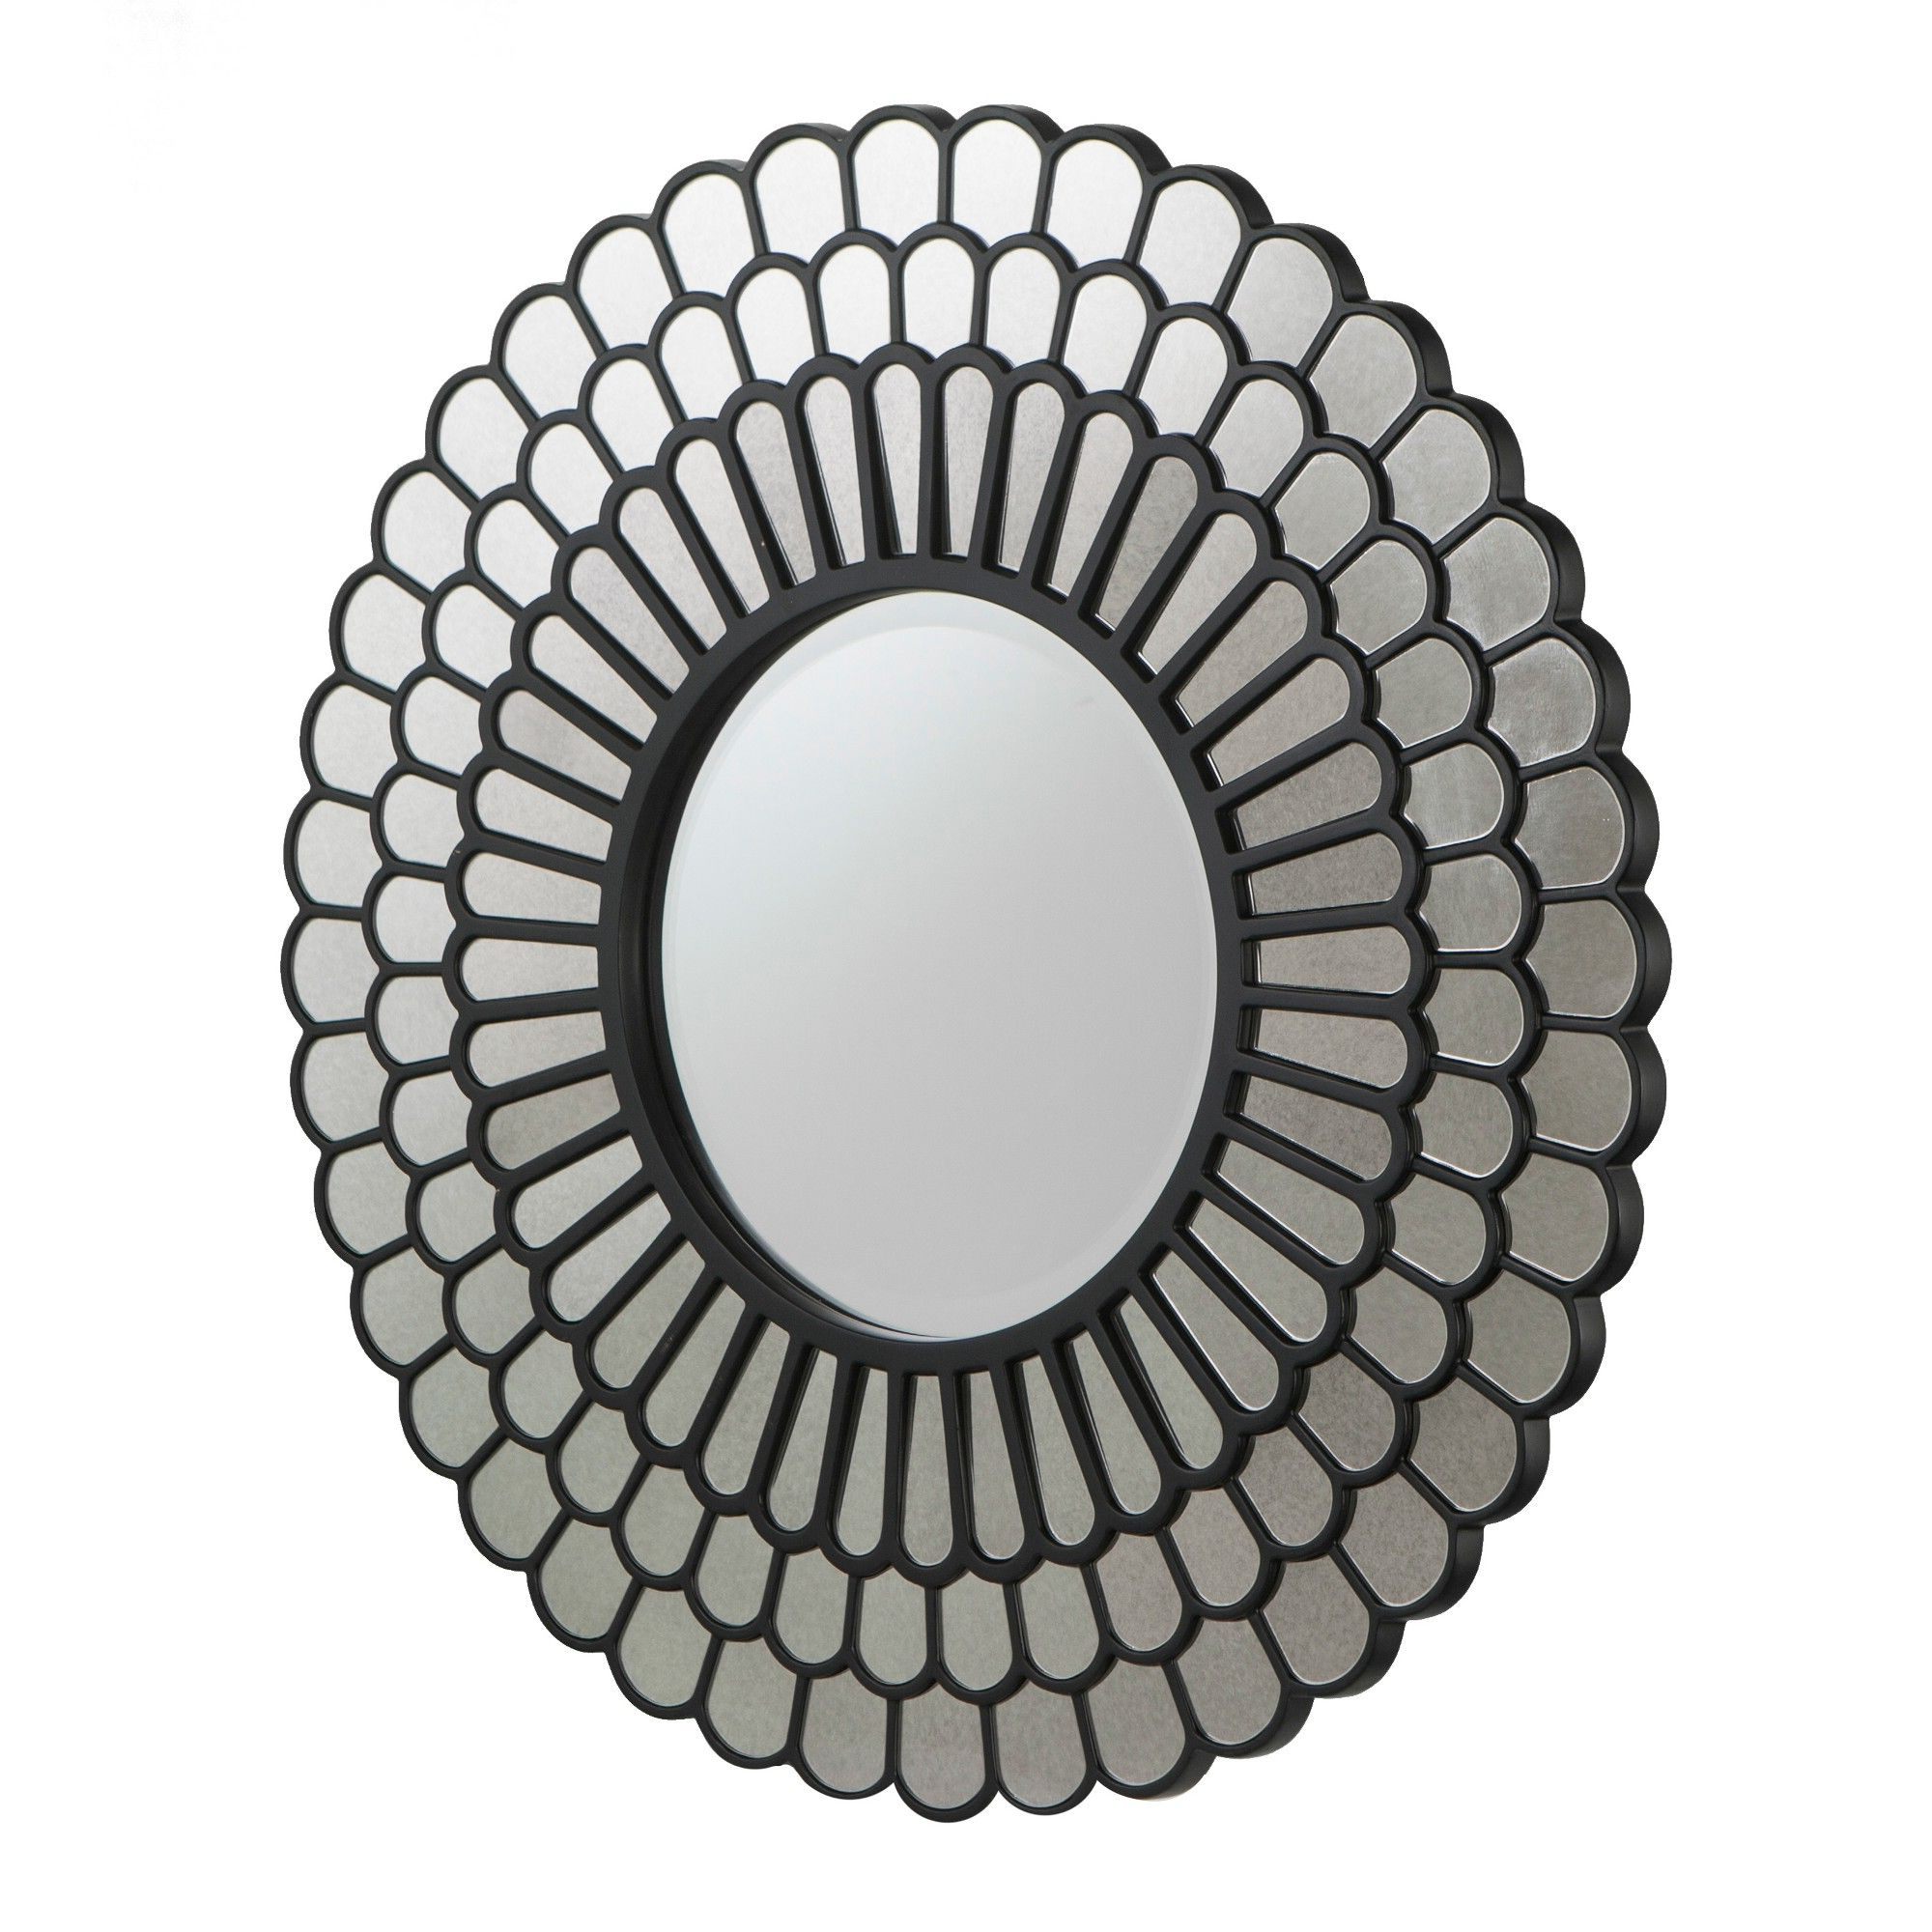 "Aiden Lane 32""x32"" Tellis Geometric Decorative Wall Mirror Black In Pertaining To Most Recent Deniece Sunburst Round Wall Mirrors (View 8 of 20)"